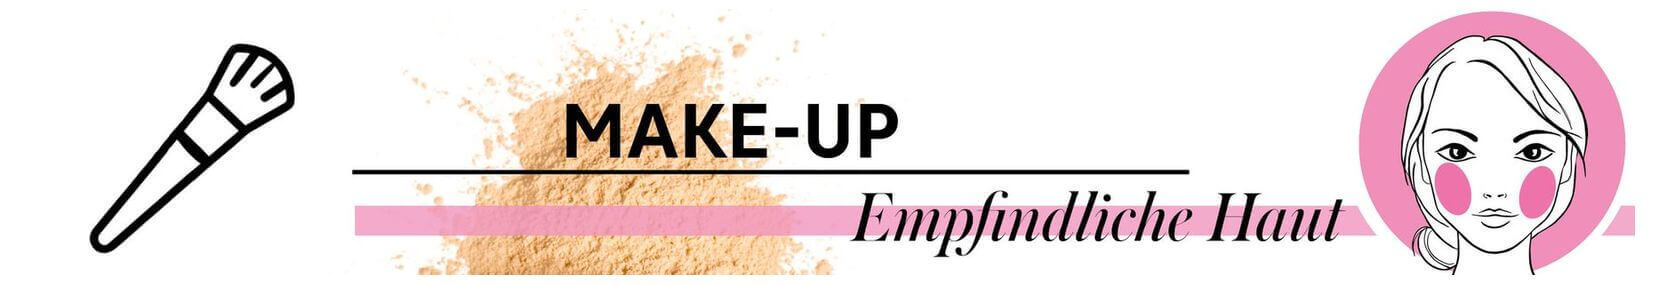 Empfindliche Haut Make-up